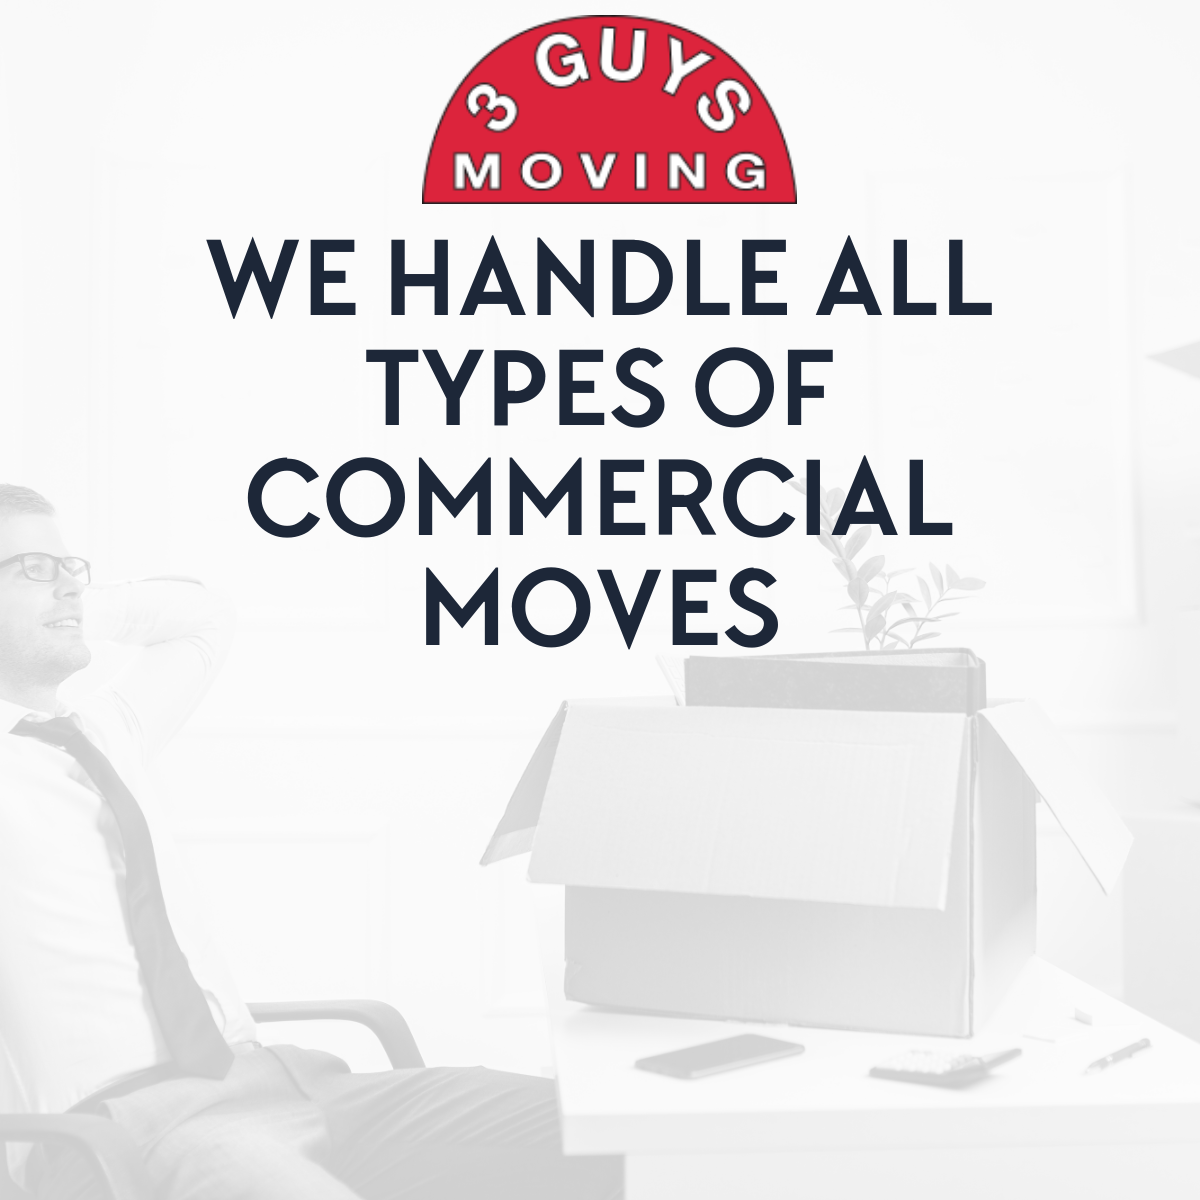 WE HANDLE ALL TYPES OF COMMERCIAL MOVES - We Handle All Types of Commercial Moves